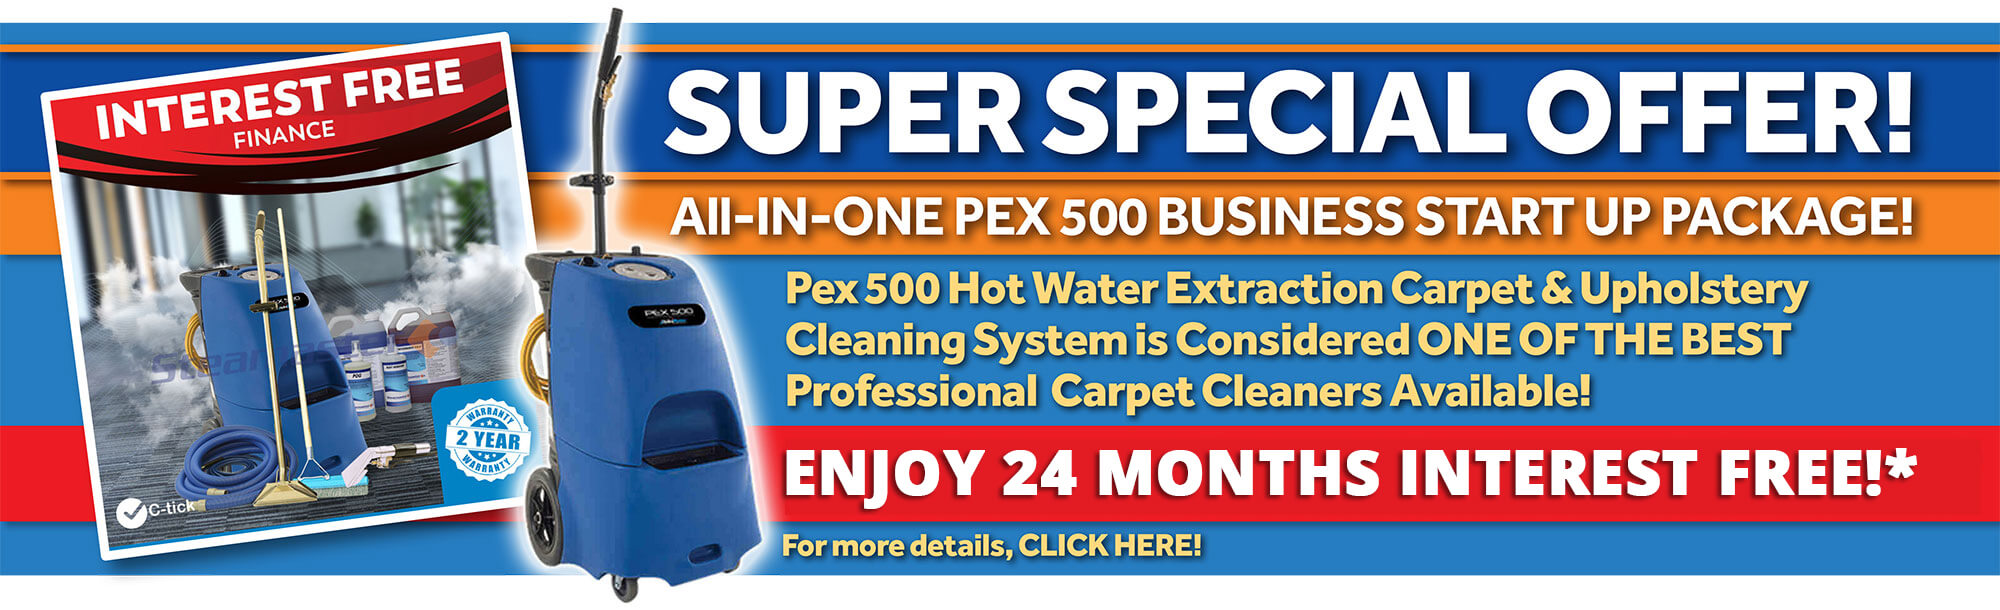 STEAMASTER - Australia's Leading Supplier of Carpet Cleaning Equipment, Machines & Products - WHOLESALE Direct To You - So You Can Enjoy Higher Profits